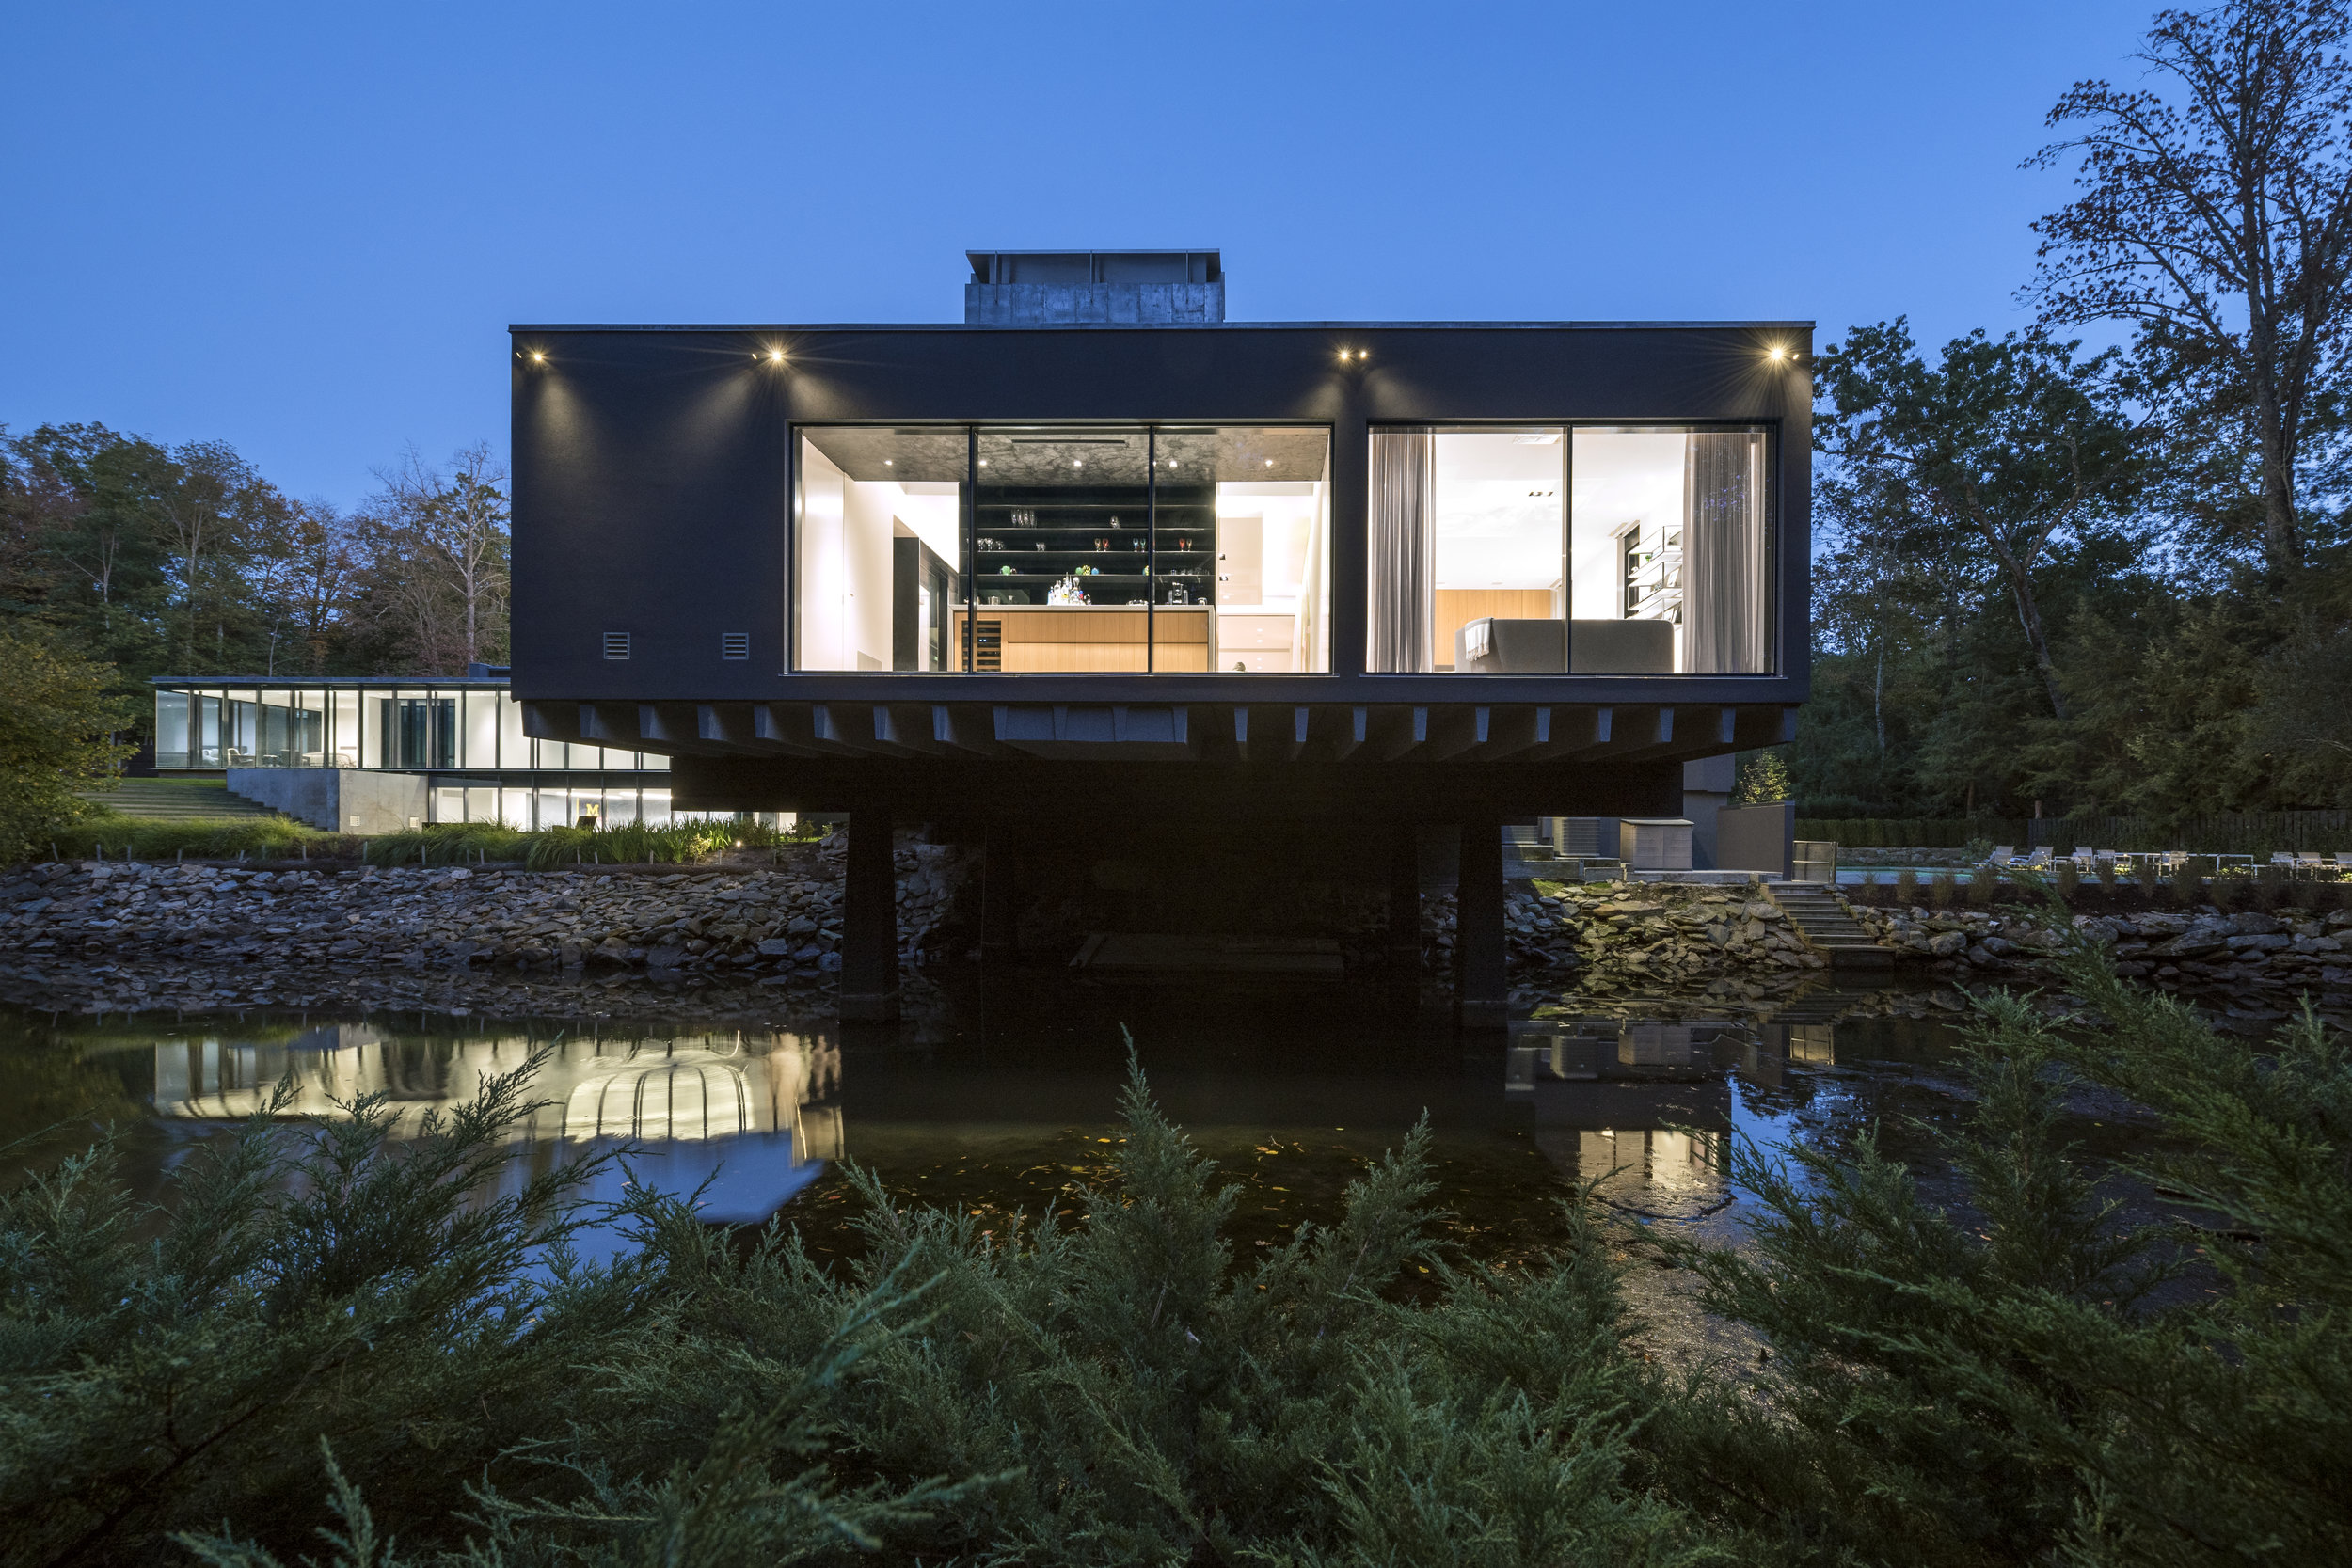 2018 aia ct design award, excellence in preservation, restoration, or adaptation2018 hobi award, home builders association of connecticut, best residential remodel2018 hobi award, home builders association of connecticut, remodeled home of the year - Project: River HouseArchitect: Joeb Moore + Partners